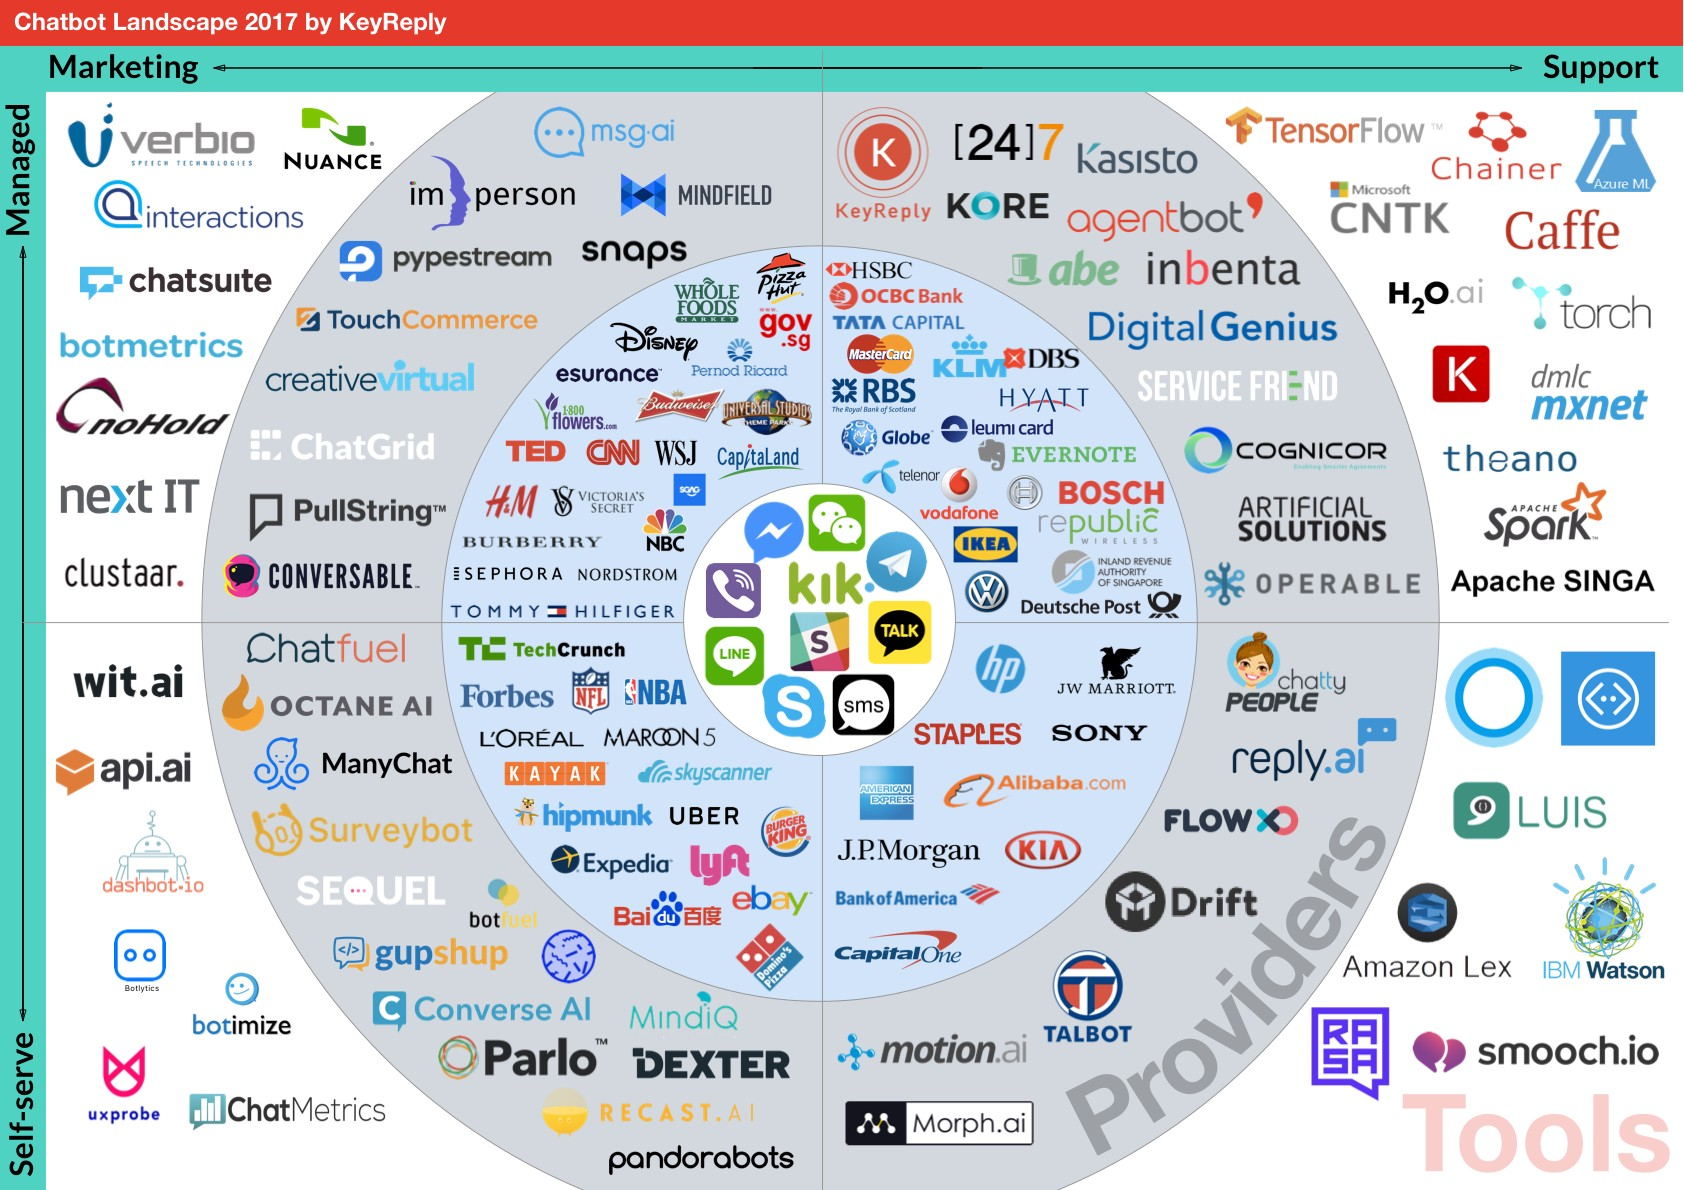 155 Chatbots In This Brand New Landscape Where Does Your